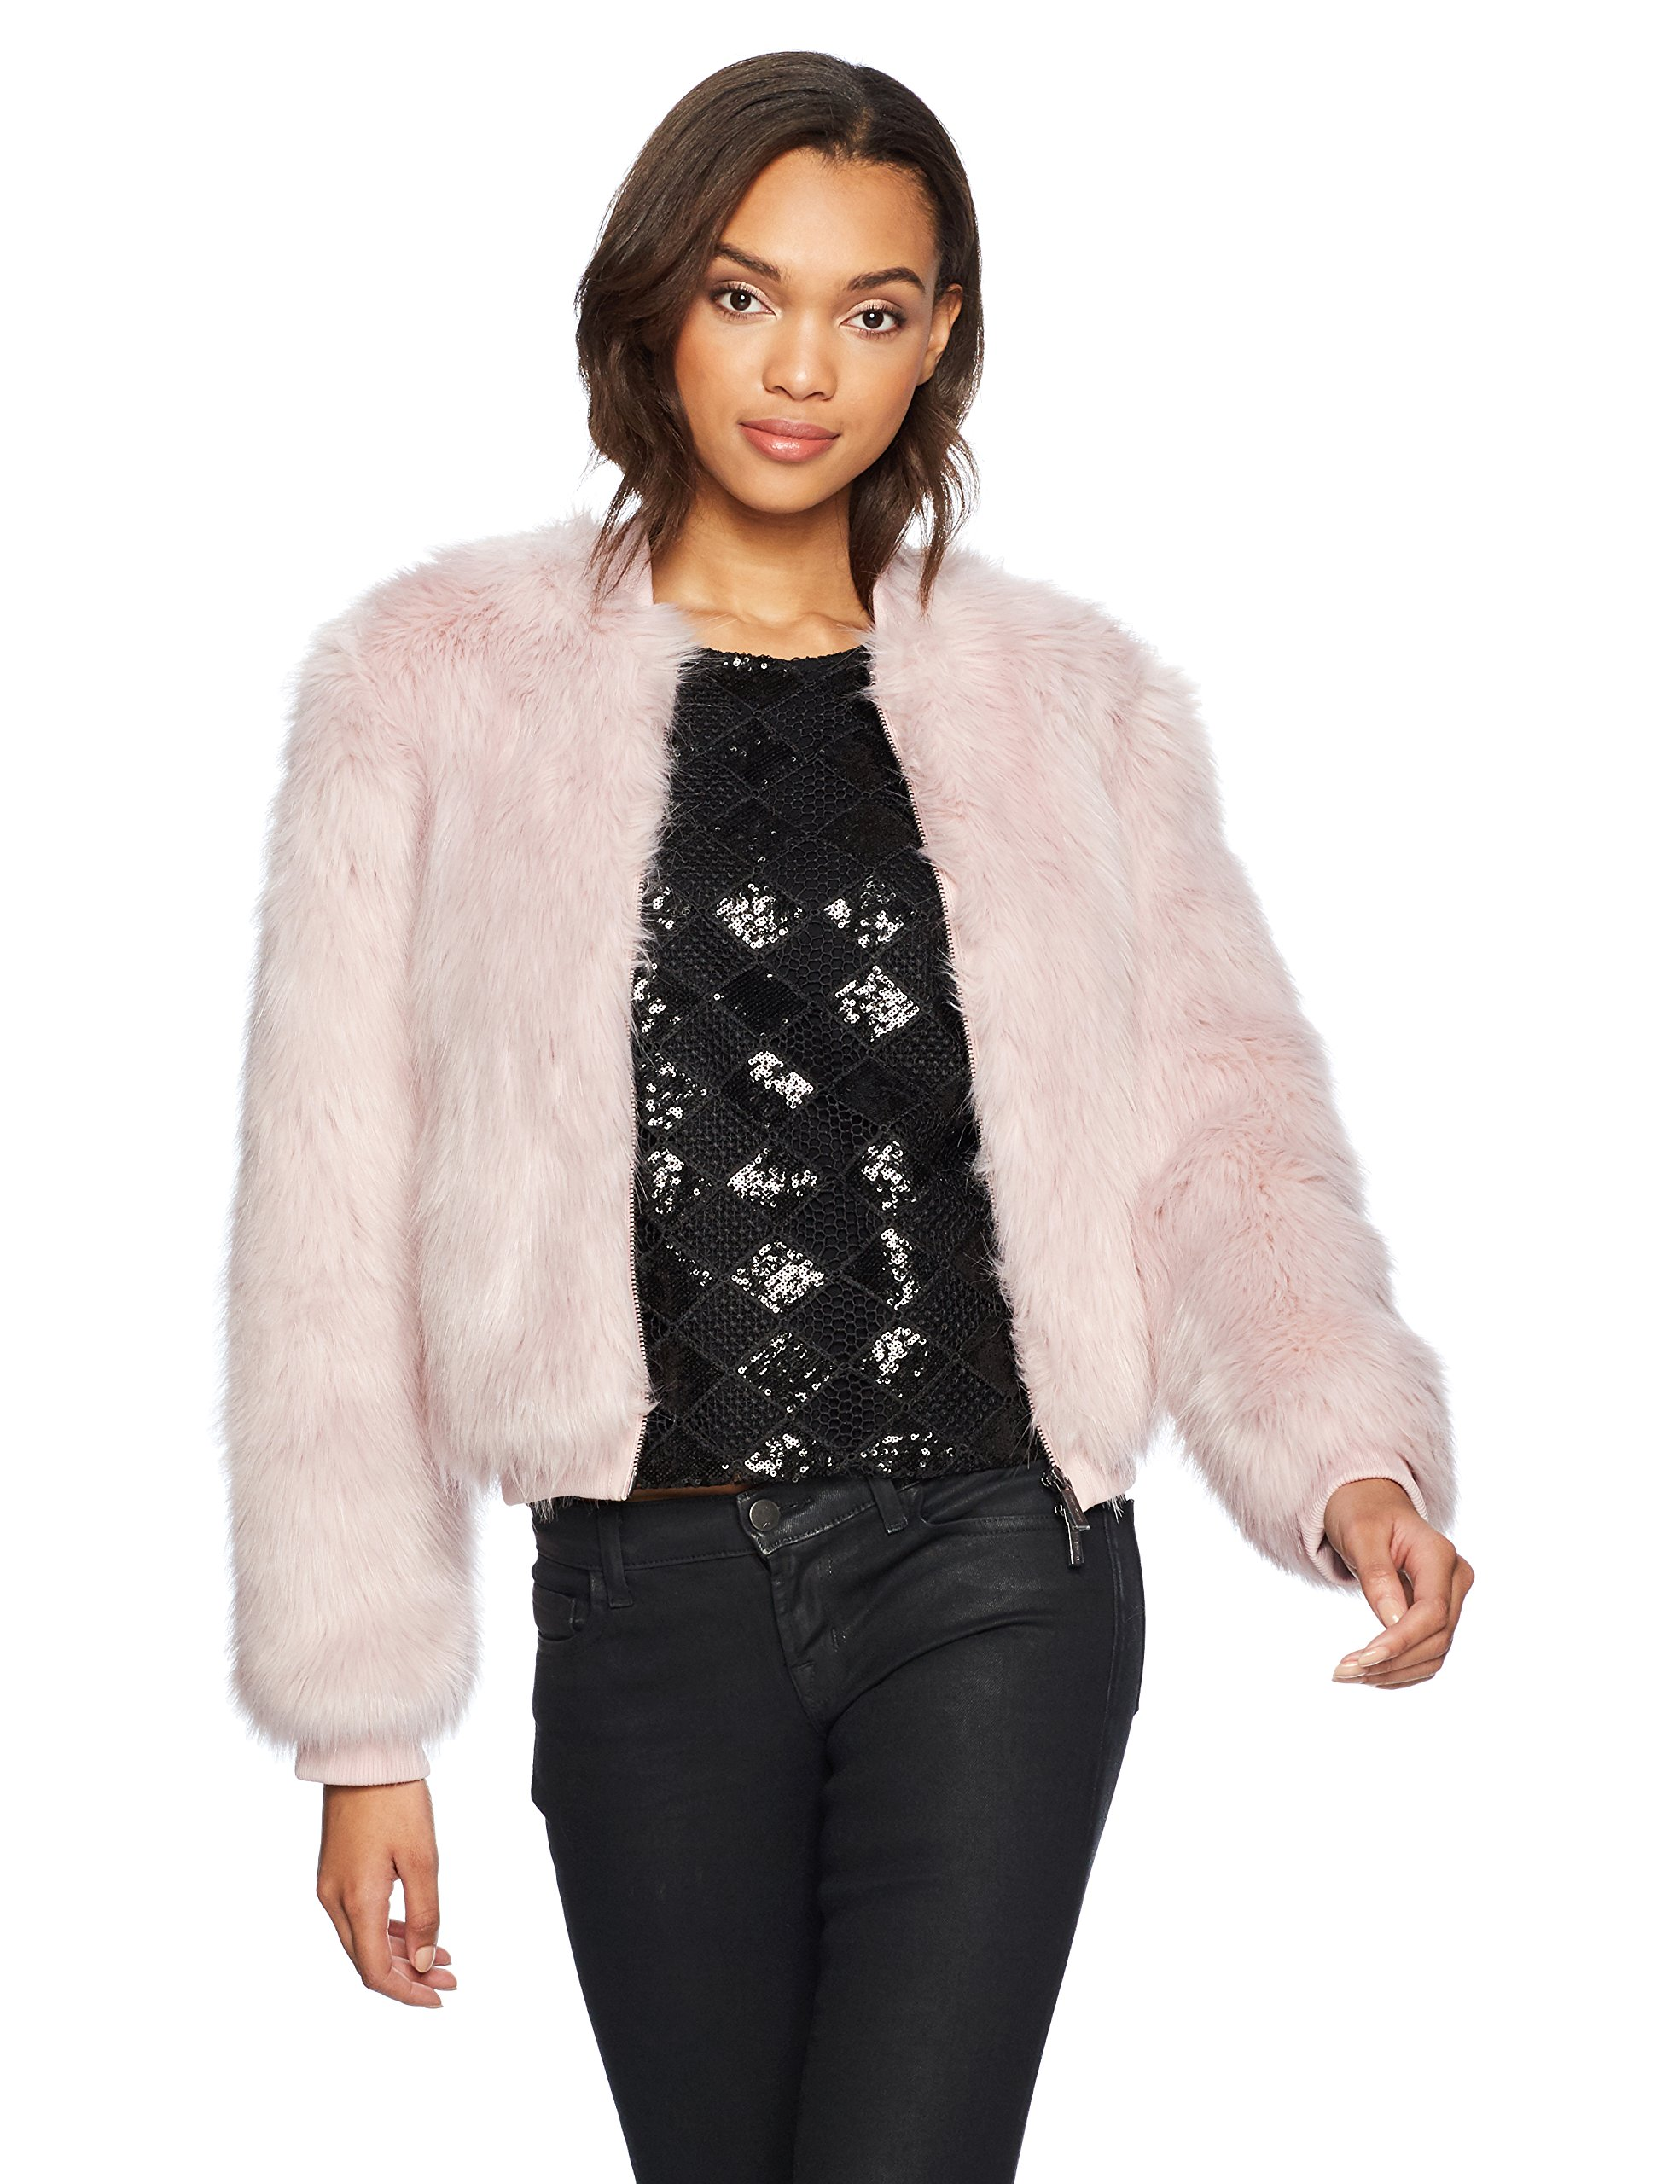 A|X Armani Exchange Women's Faux Fur Zip Jacket, Rosewater, S by A|X Armani Exchange